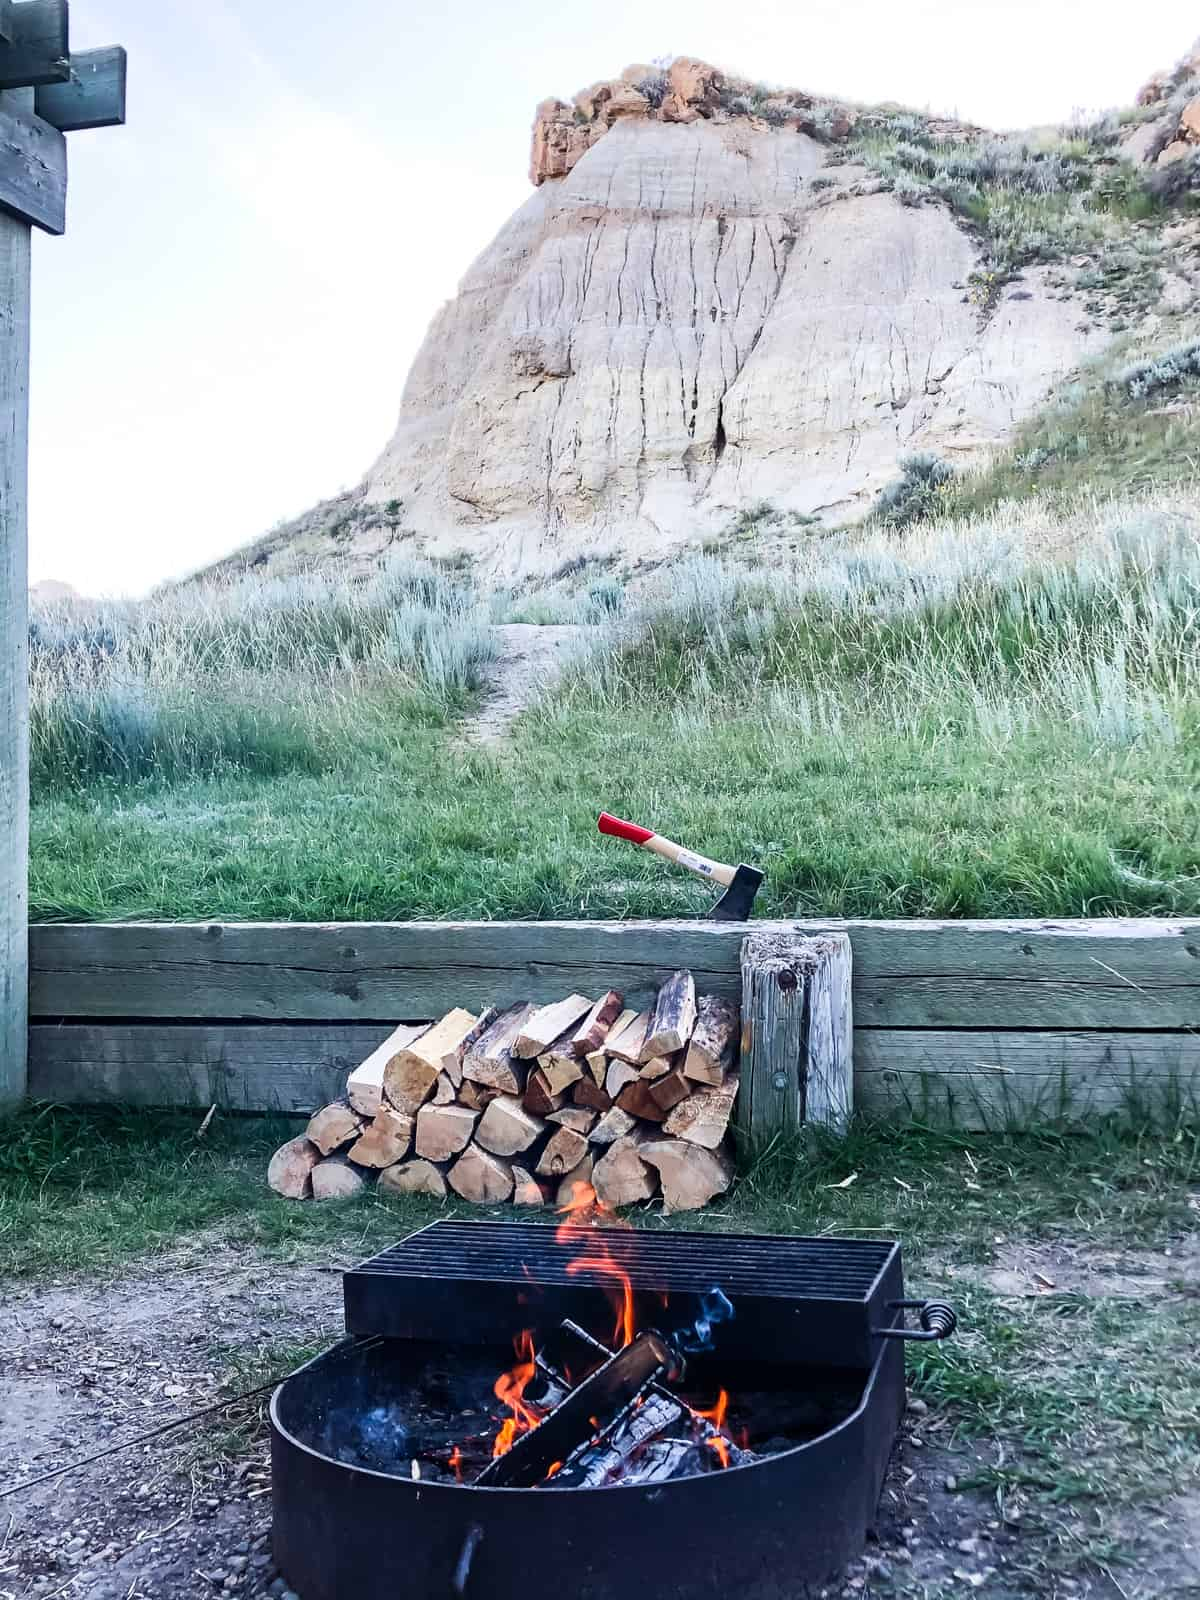 A campfire with stacks of firewood in the background